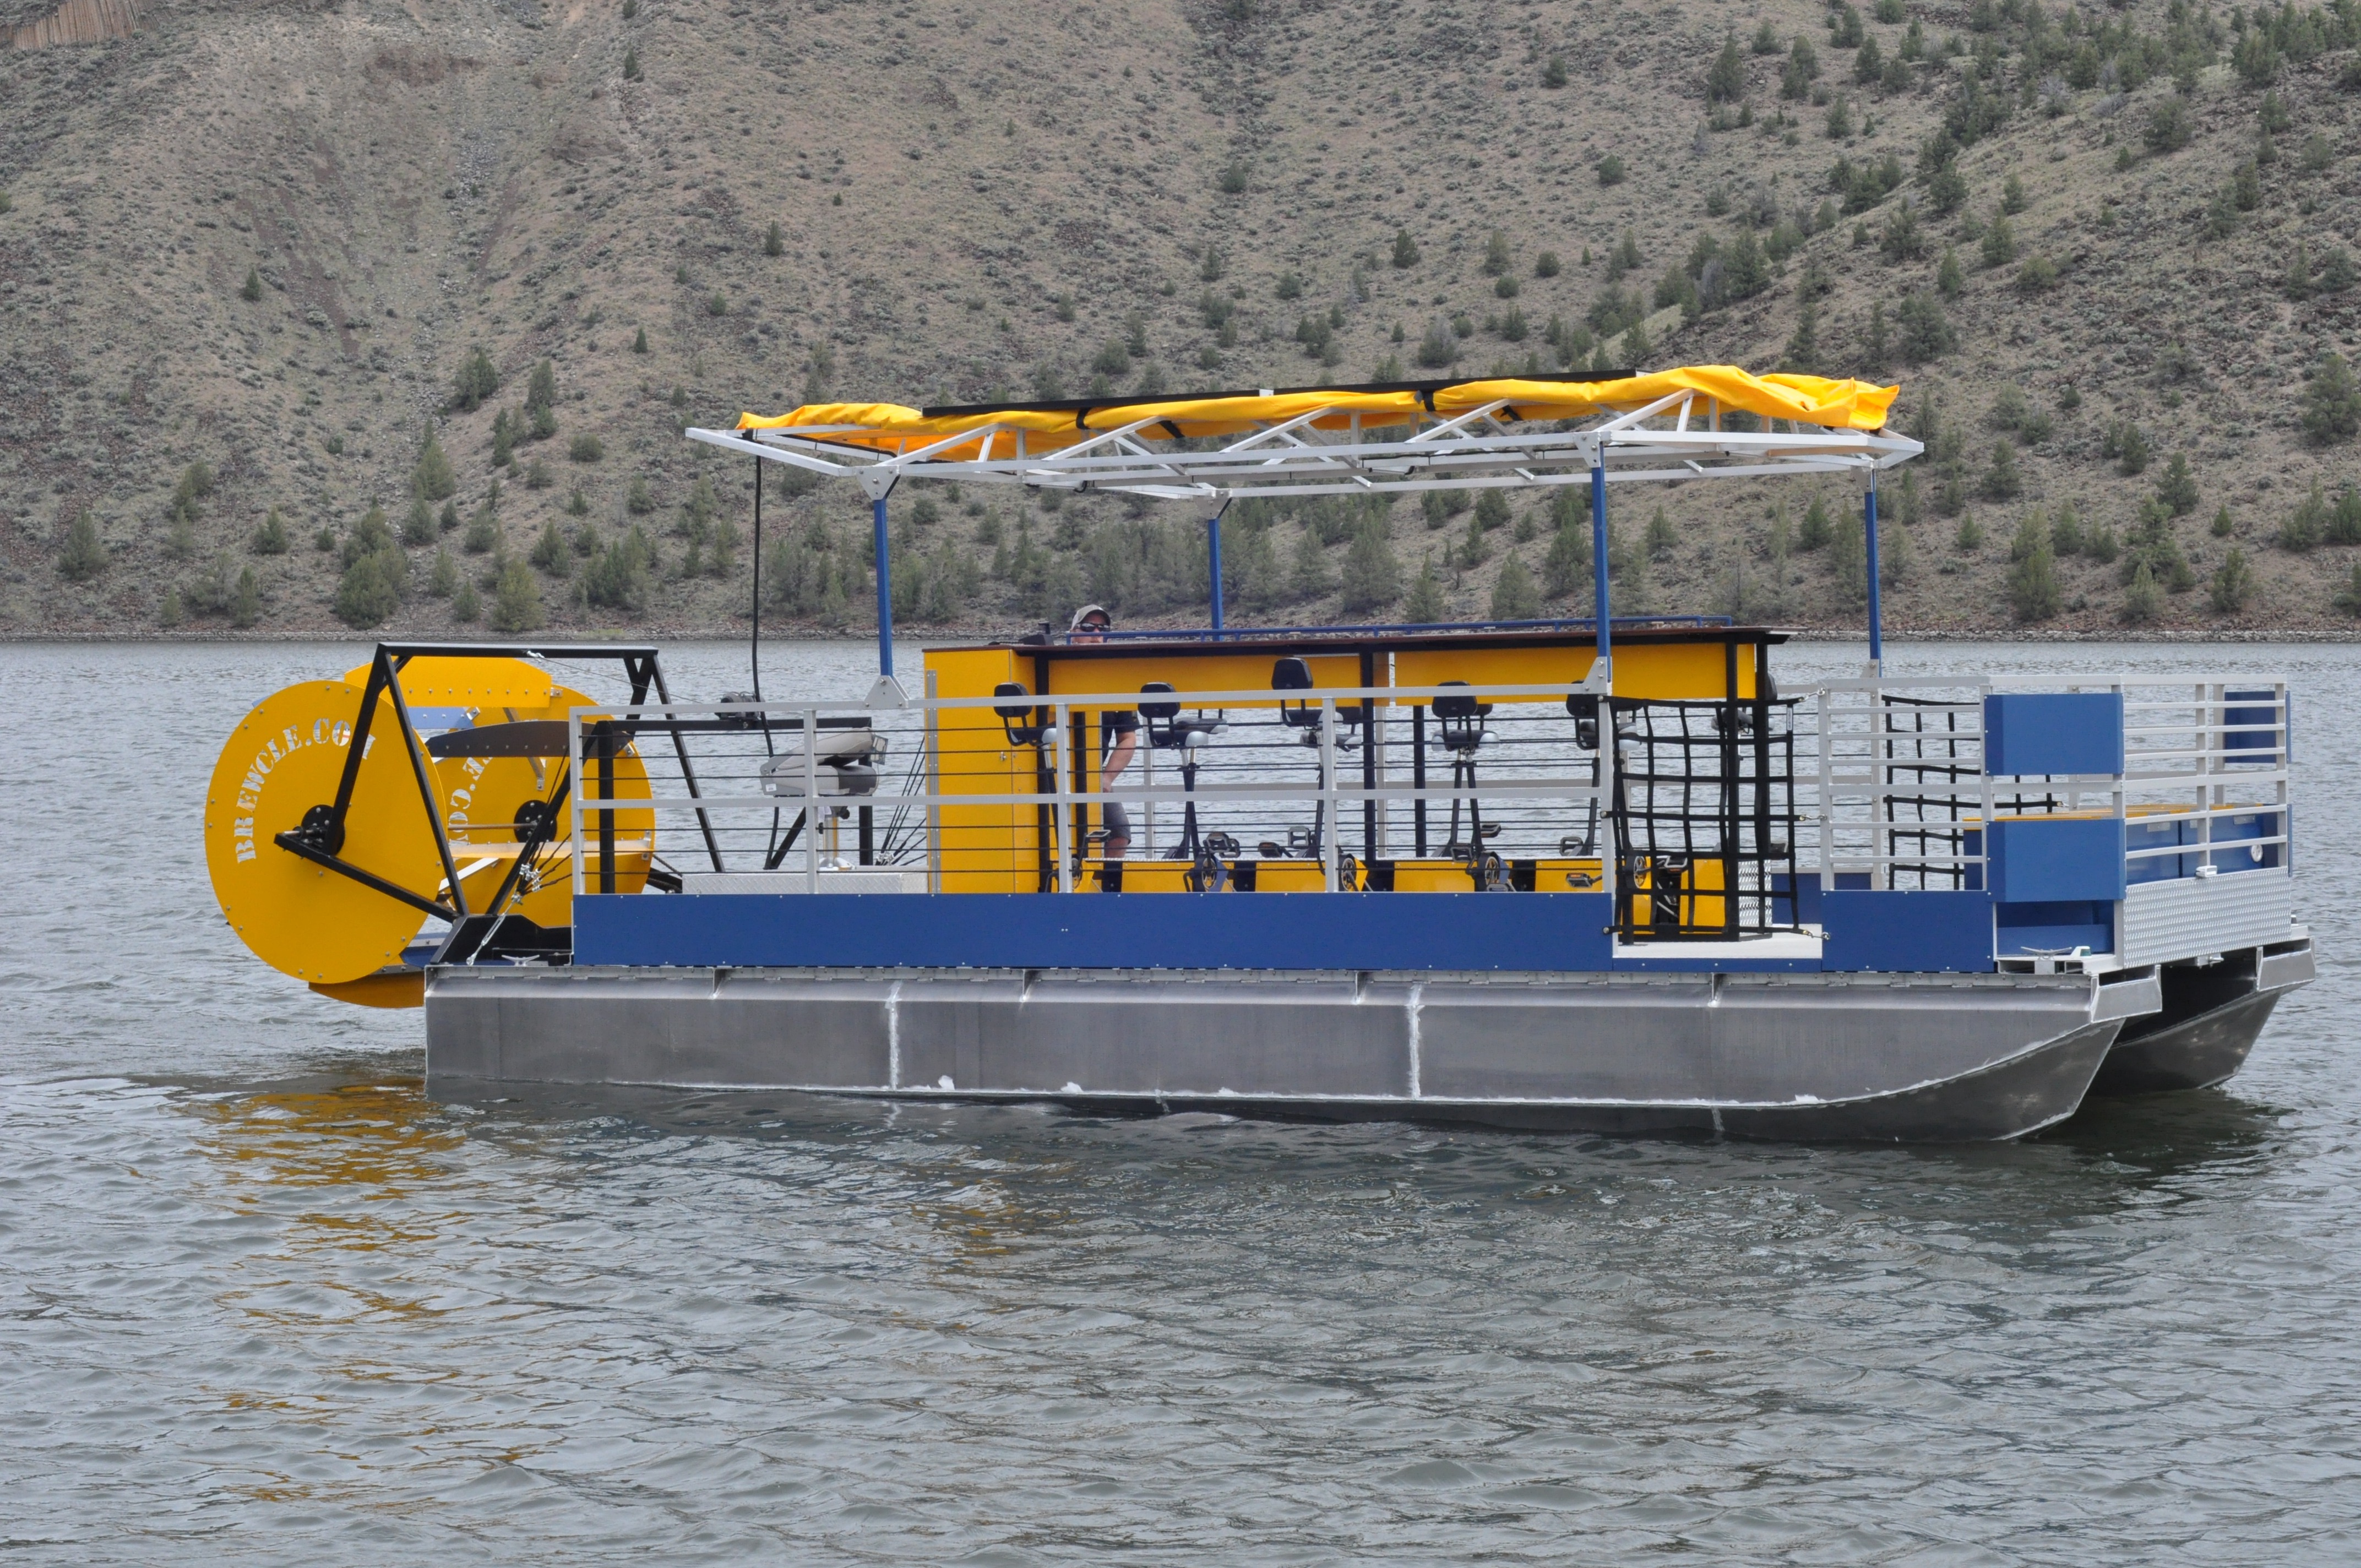 A Cascade Cycleboat floating near Bend, Oregon. (Contributed photo)